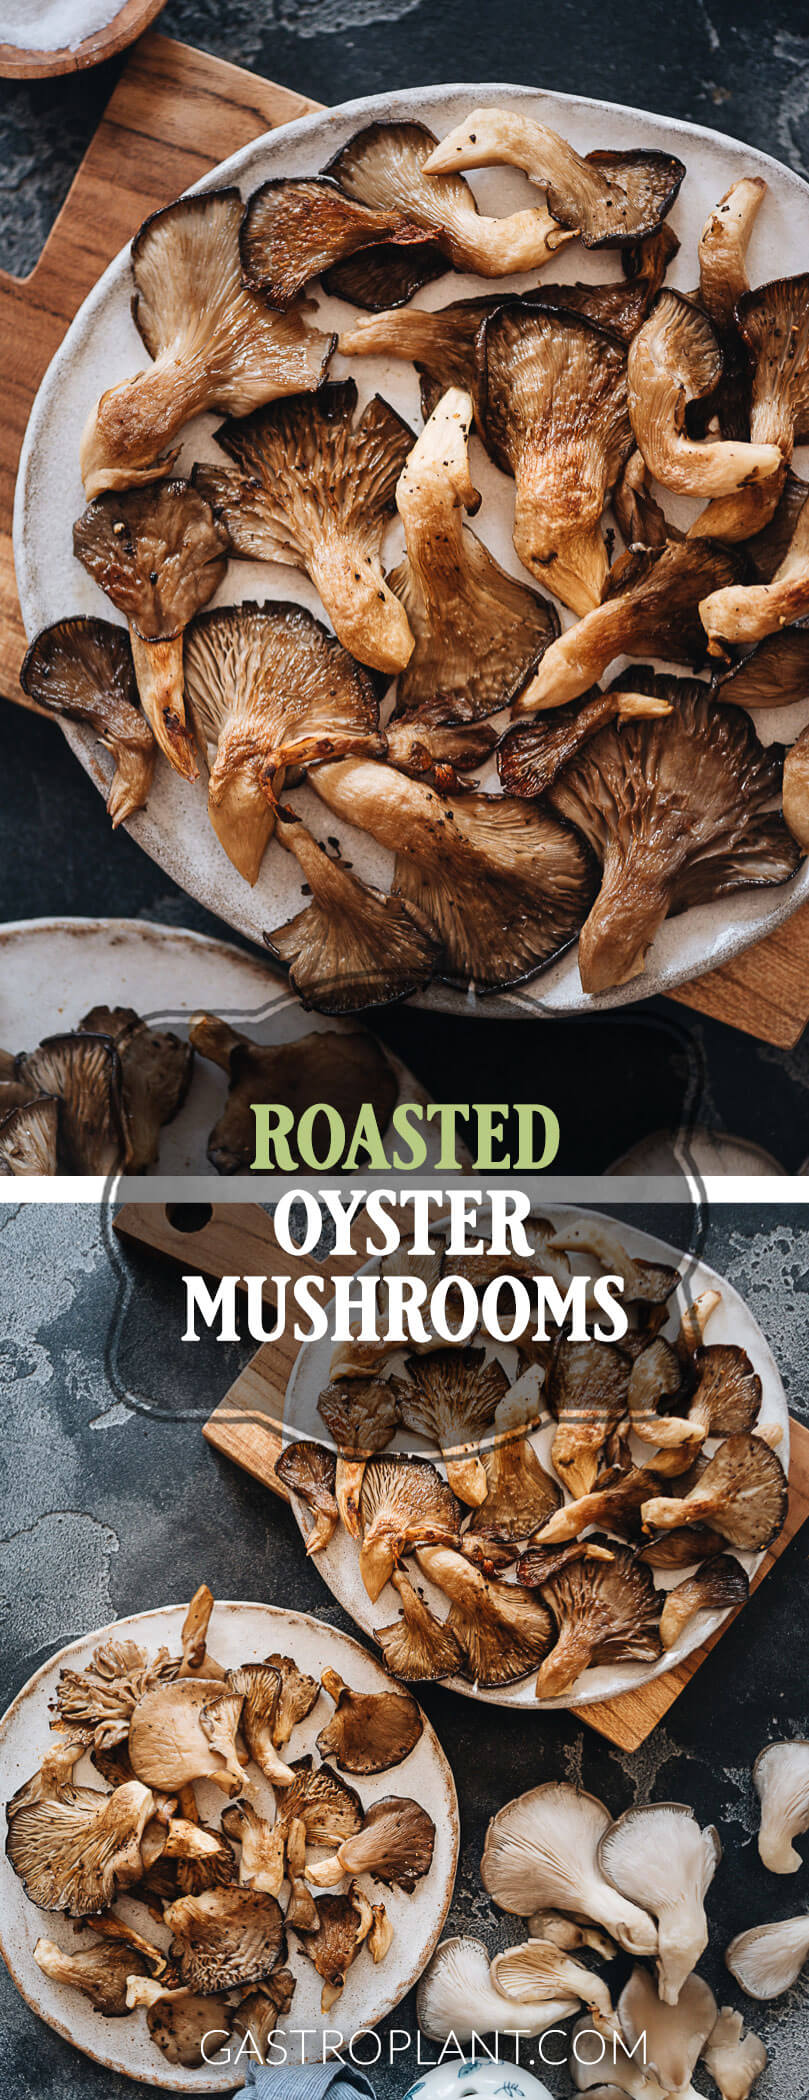 Easy roasted oyster mushroom recipe